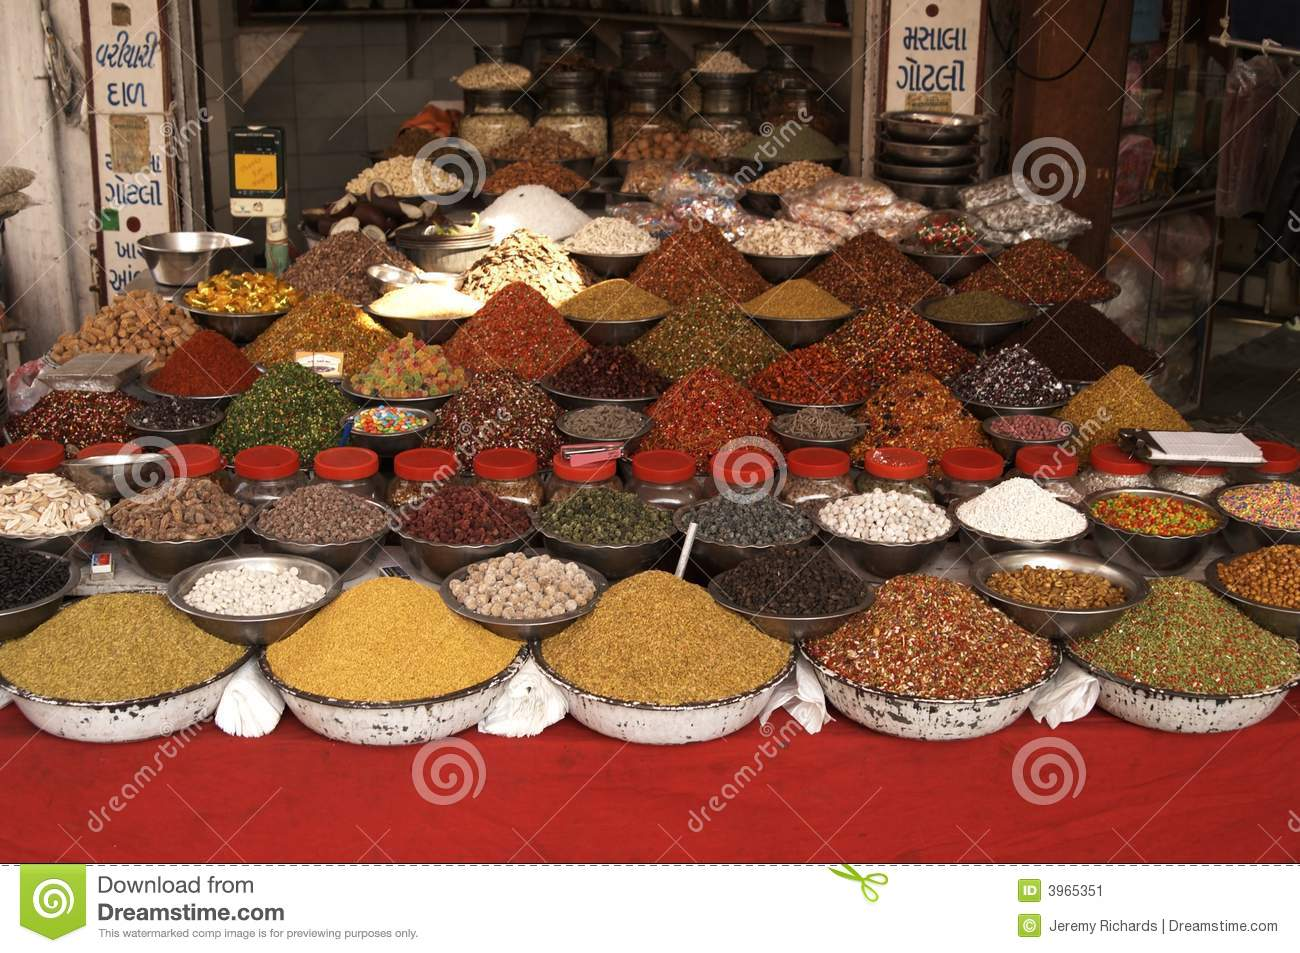 Stock Image  Indian Market Stall Selling Nuts and SpicesIndian Market Stall